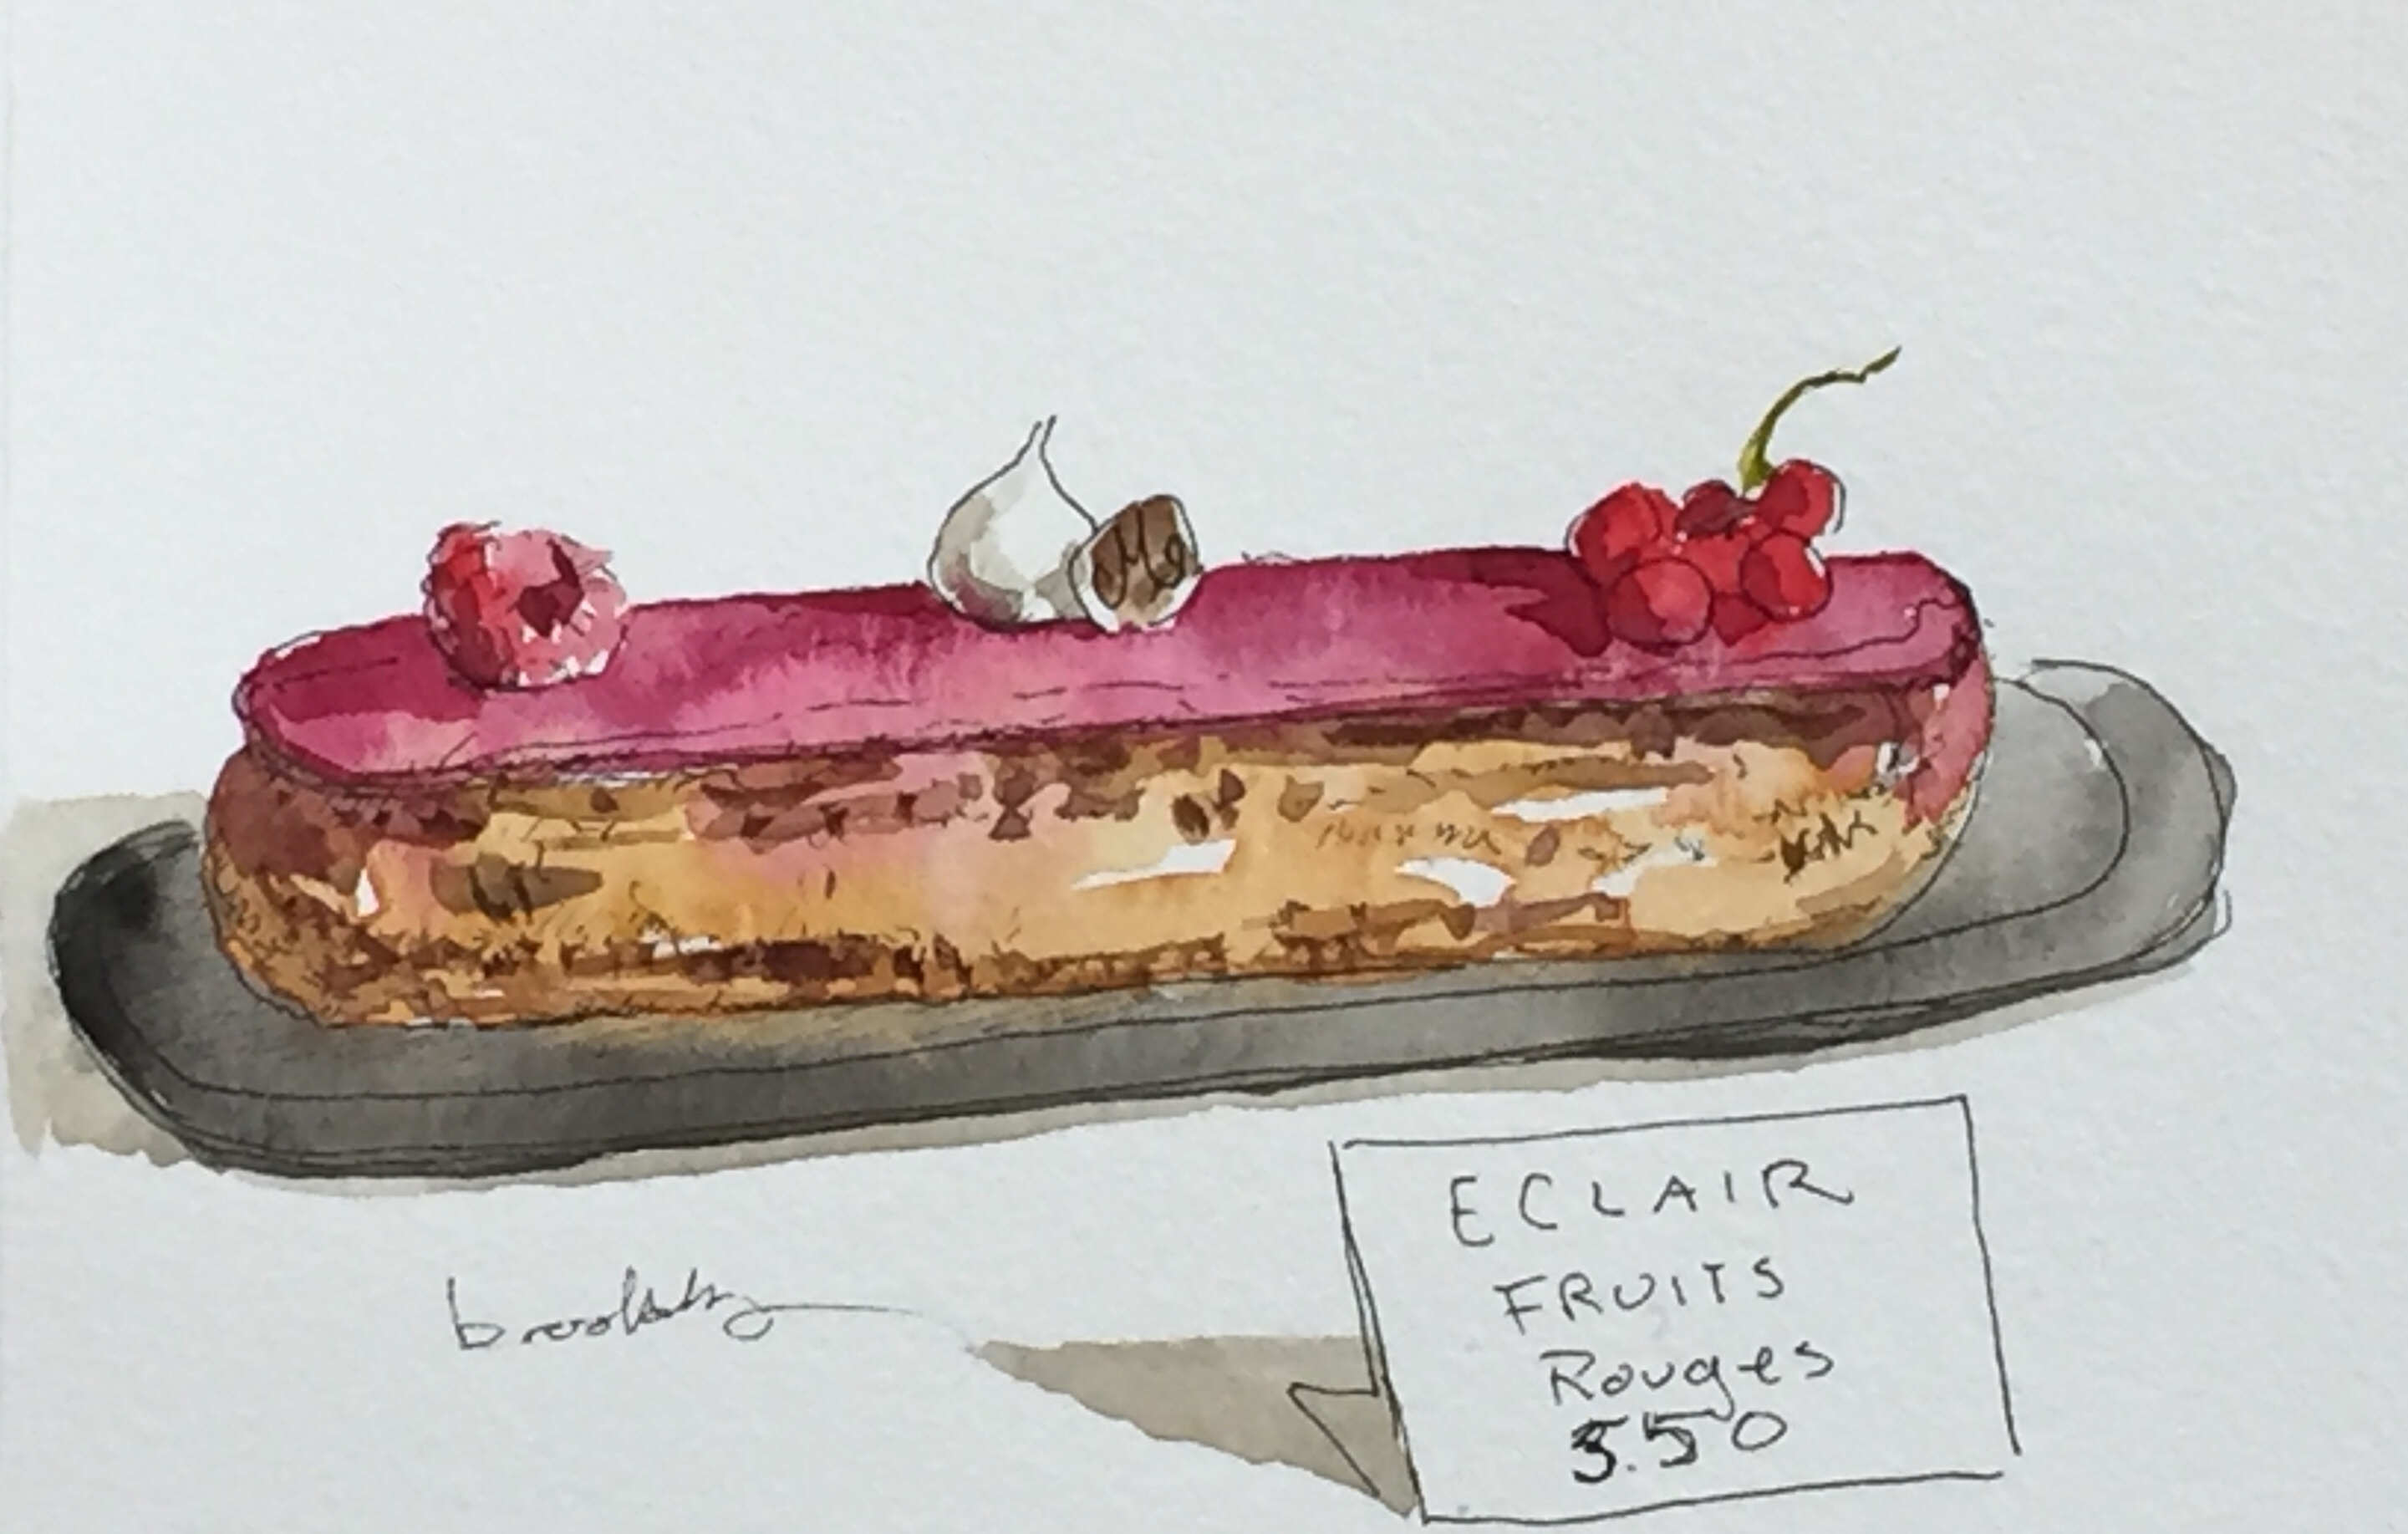 7520 eclair fruits rouges de marius